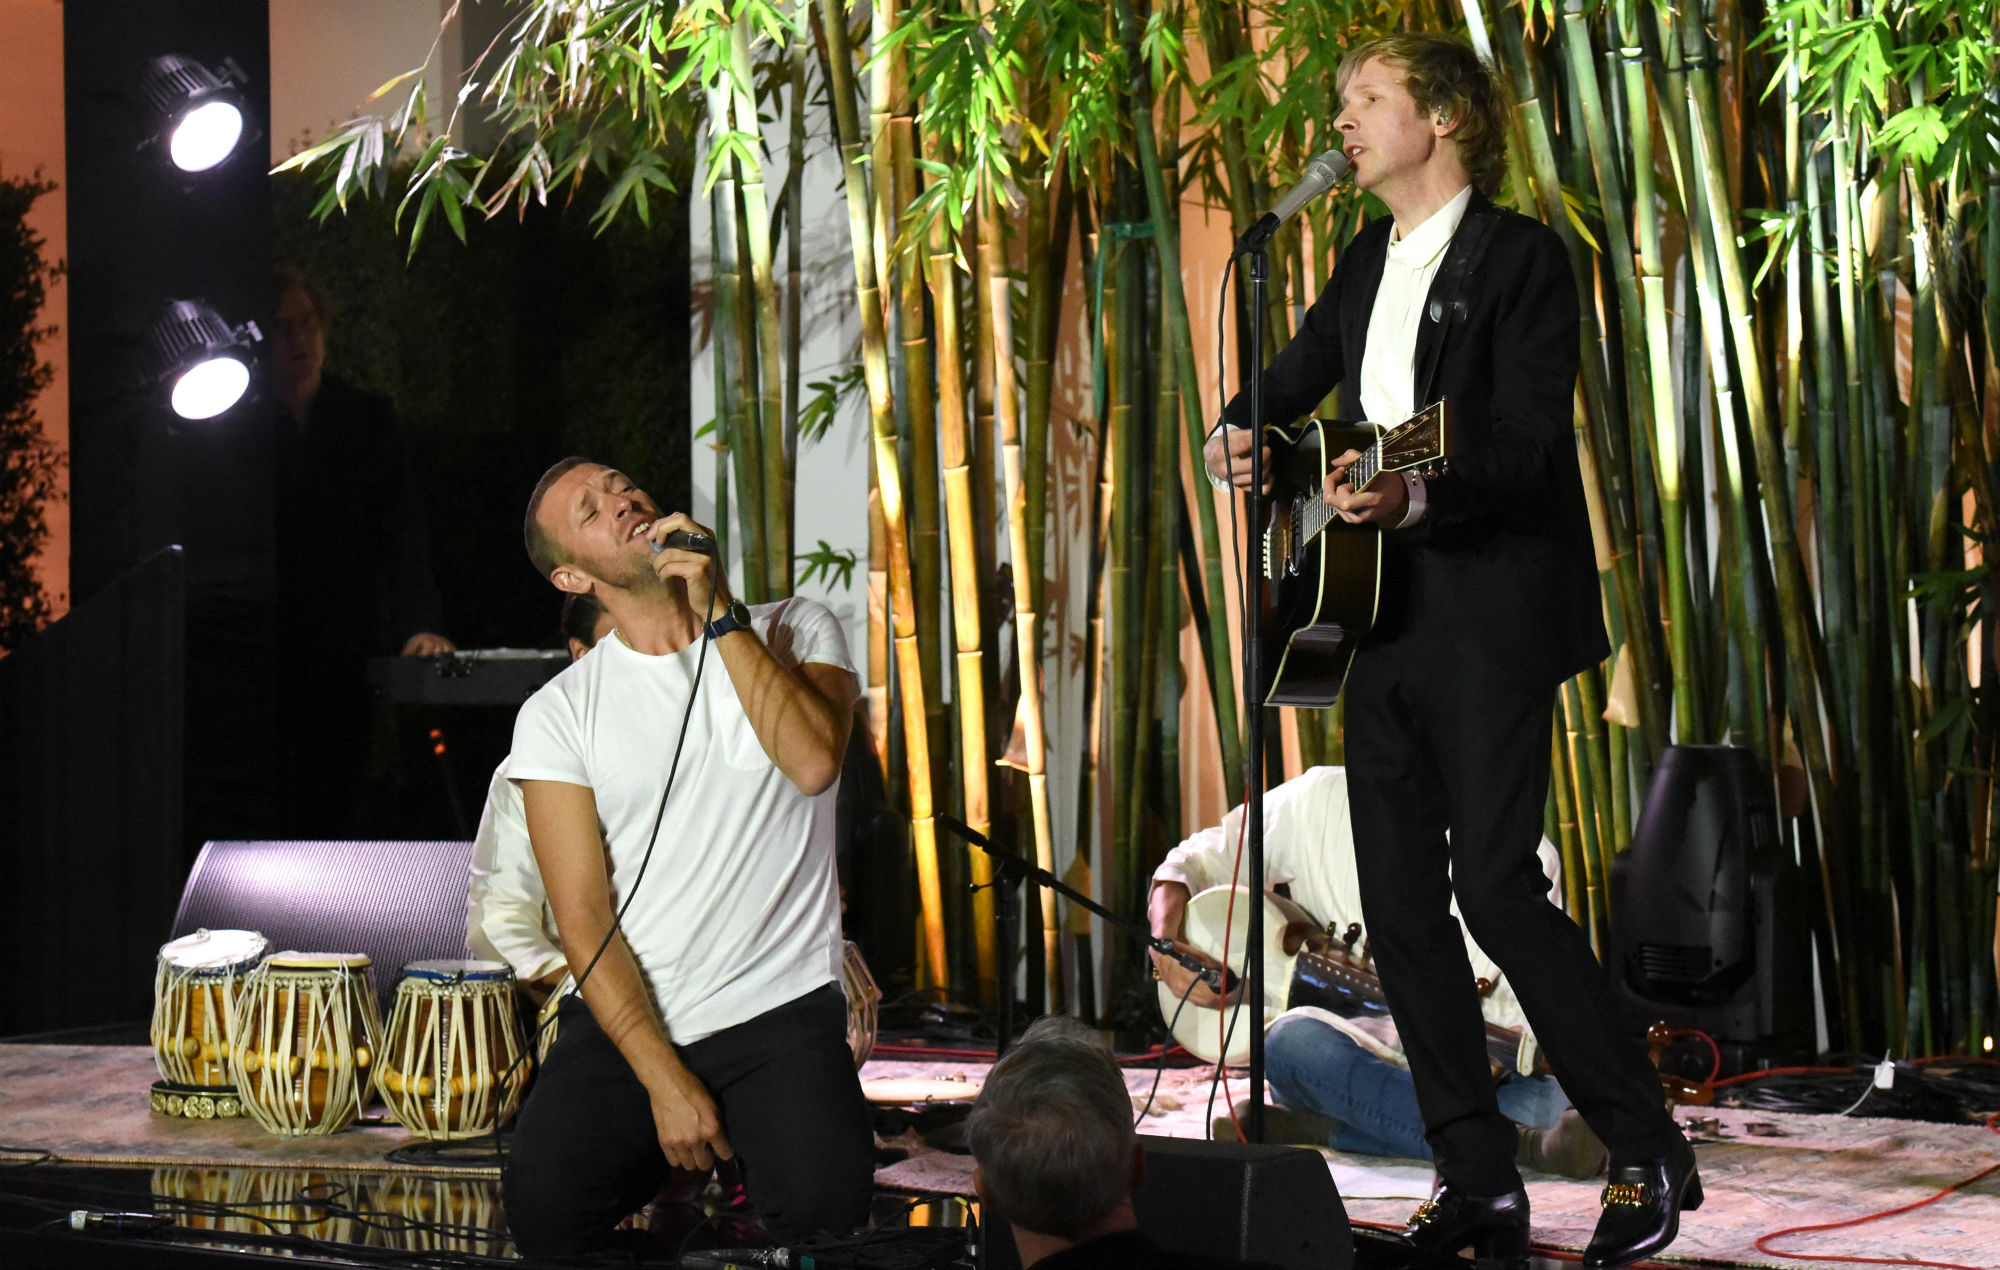 Watch Coldplay frontman Chris Martin join Beck for 'Loser' performance